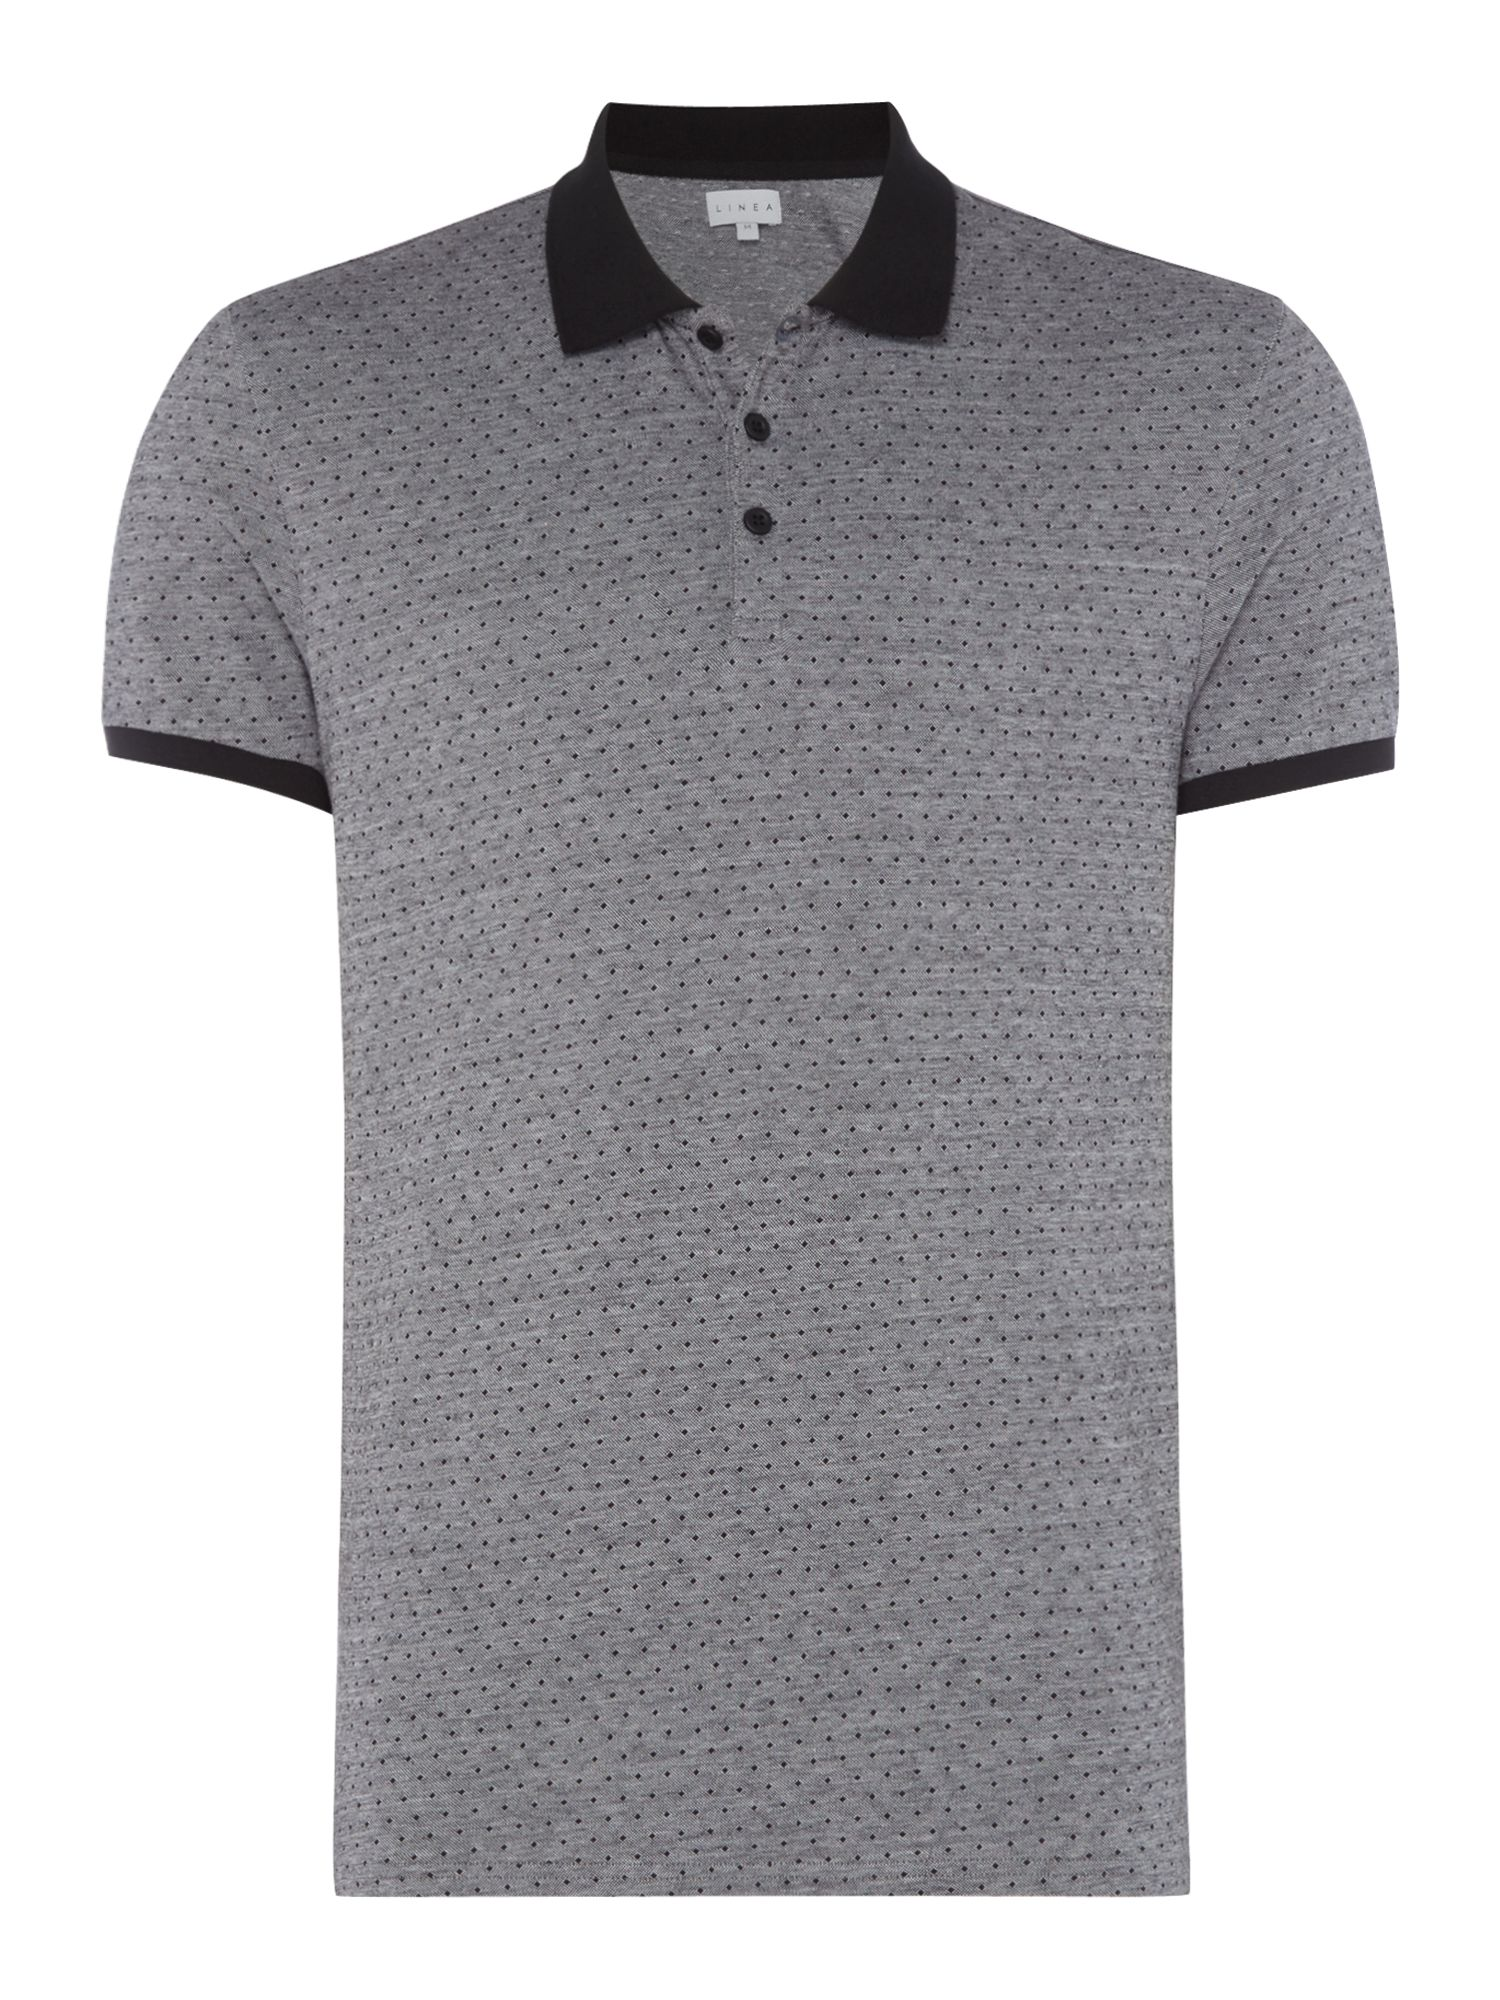 Men's Linea City Mercerised Spot Jaquard Polo, Black